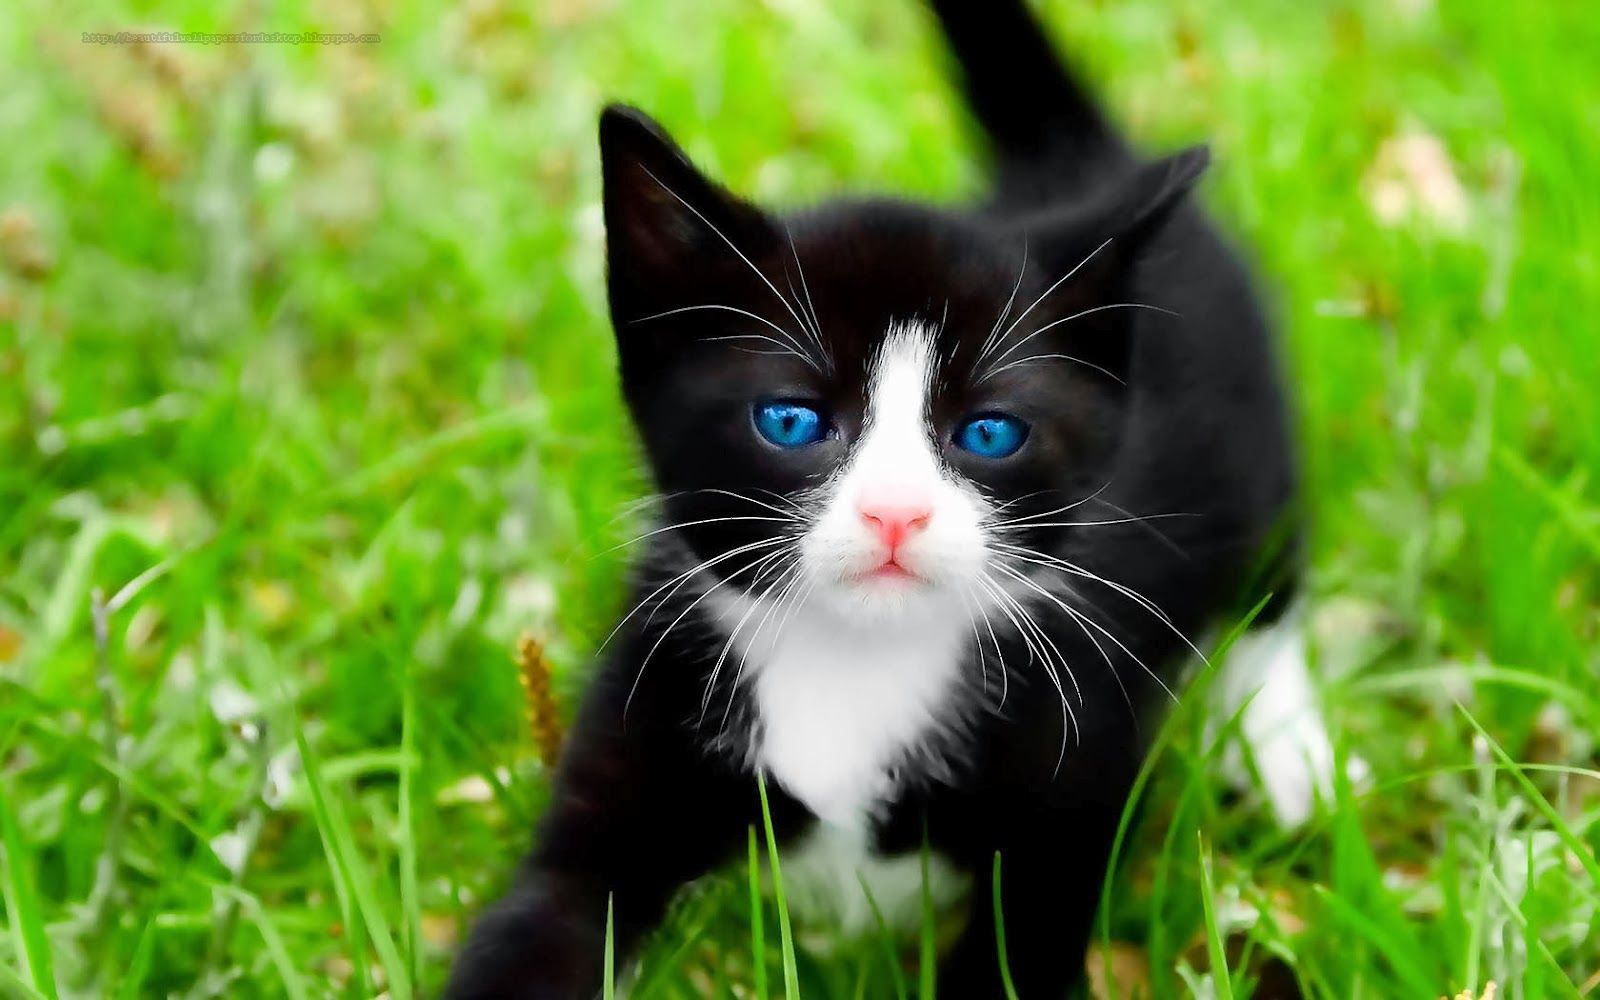 Hd wallpaper cat - Cute Cats Hd Wallpapers Pictures Images Backgrounds Photos